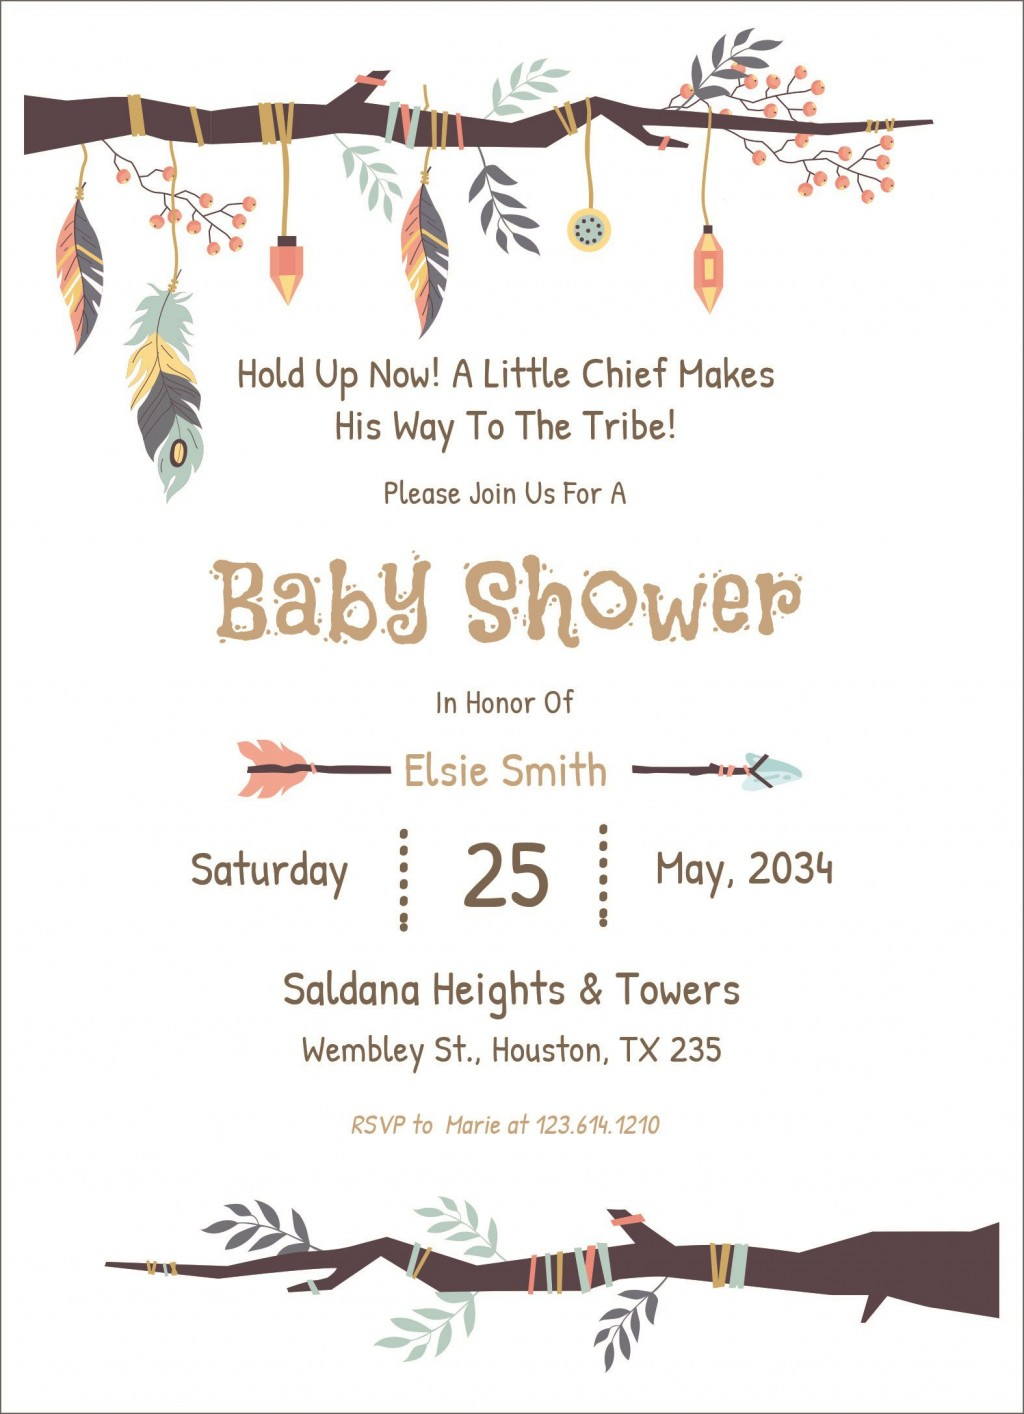 003 Stupendou Baby Shower Invitation Template Design  Editable Girl Downloadable Free Pdf VirtualLarge